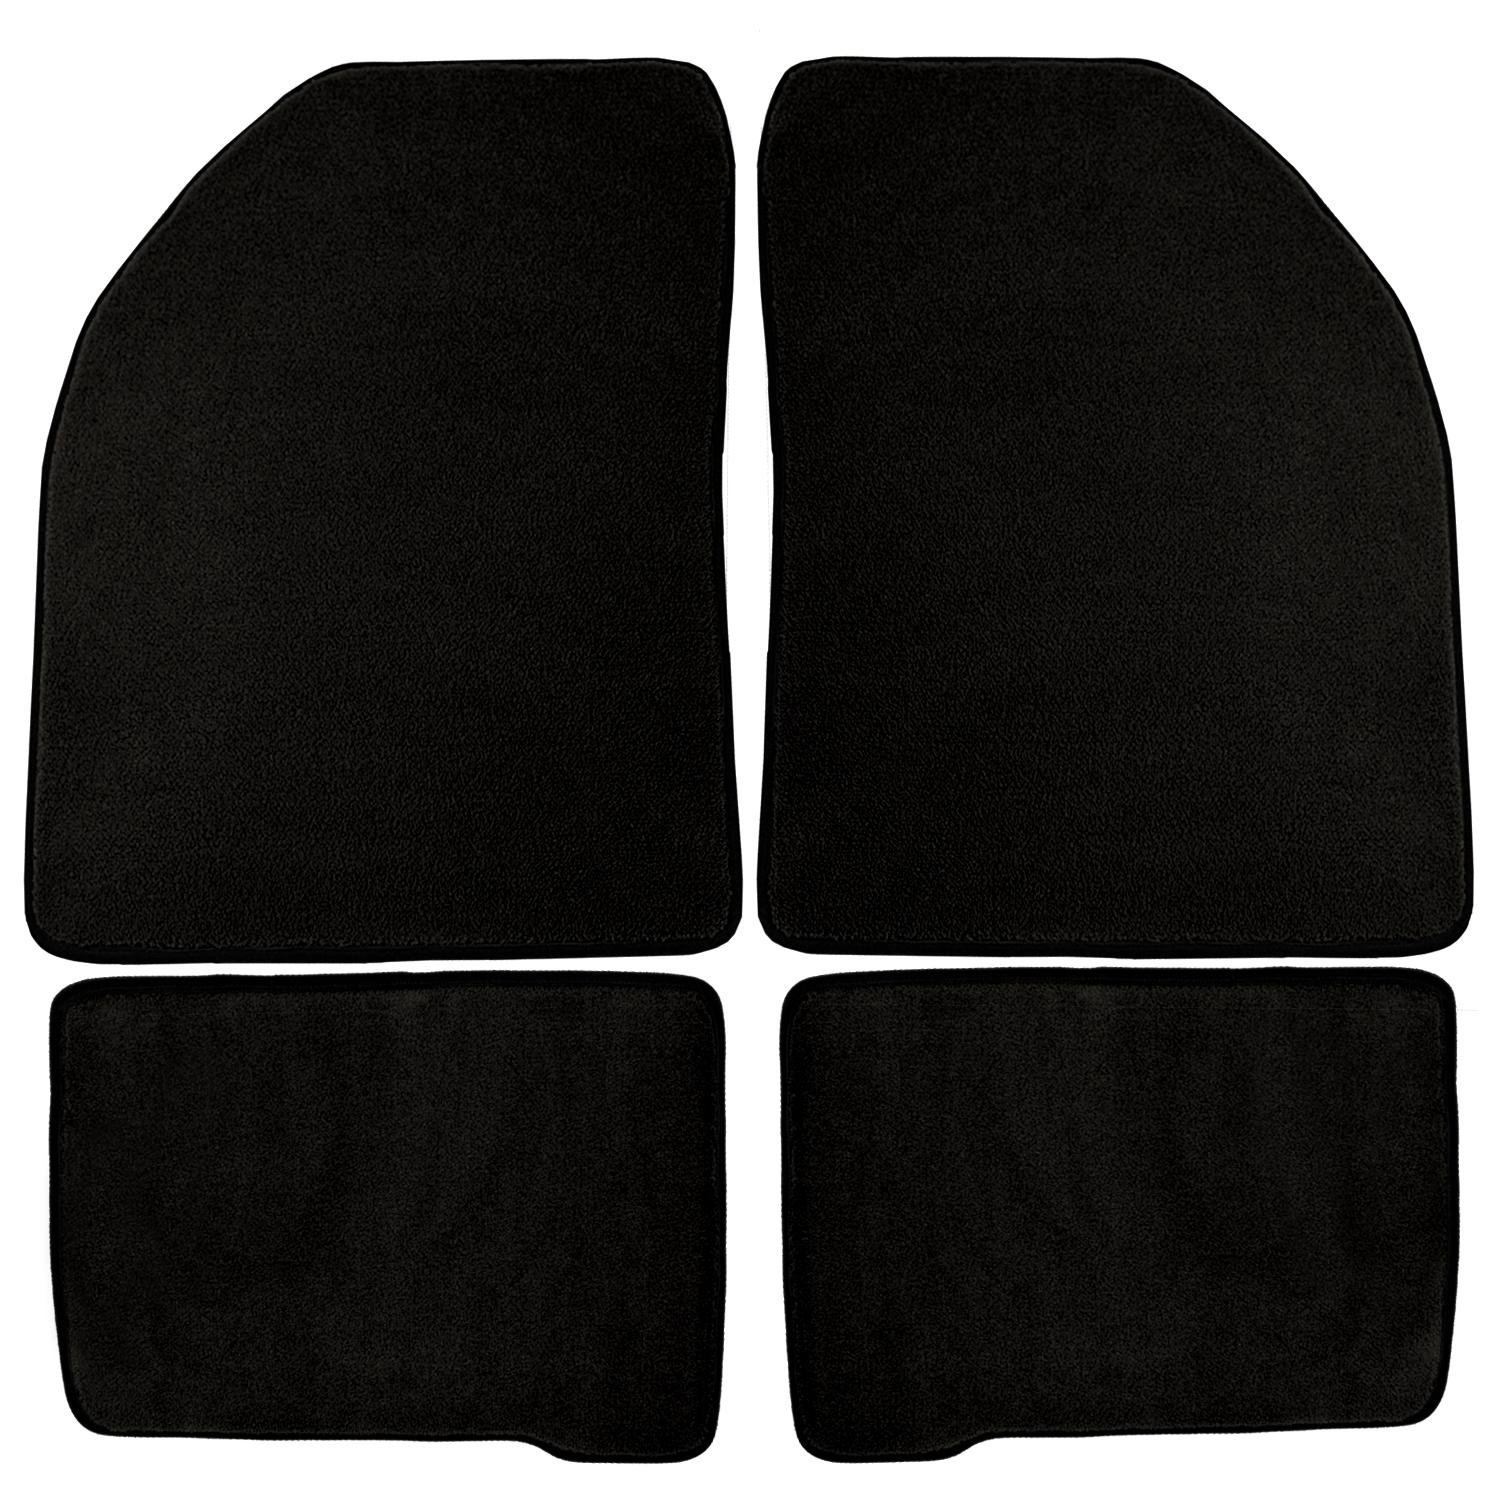 Black Coverking Custom Fit Front Floor Mats for Select Probe Models Nylon Carpet